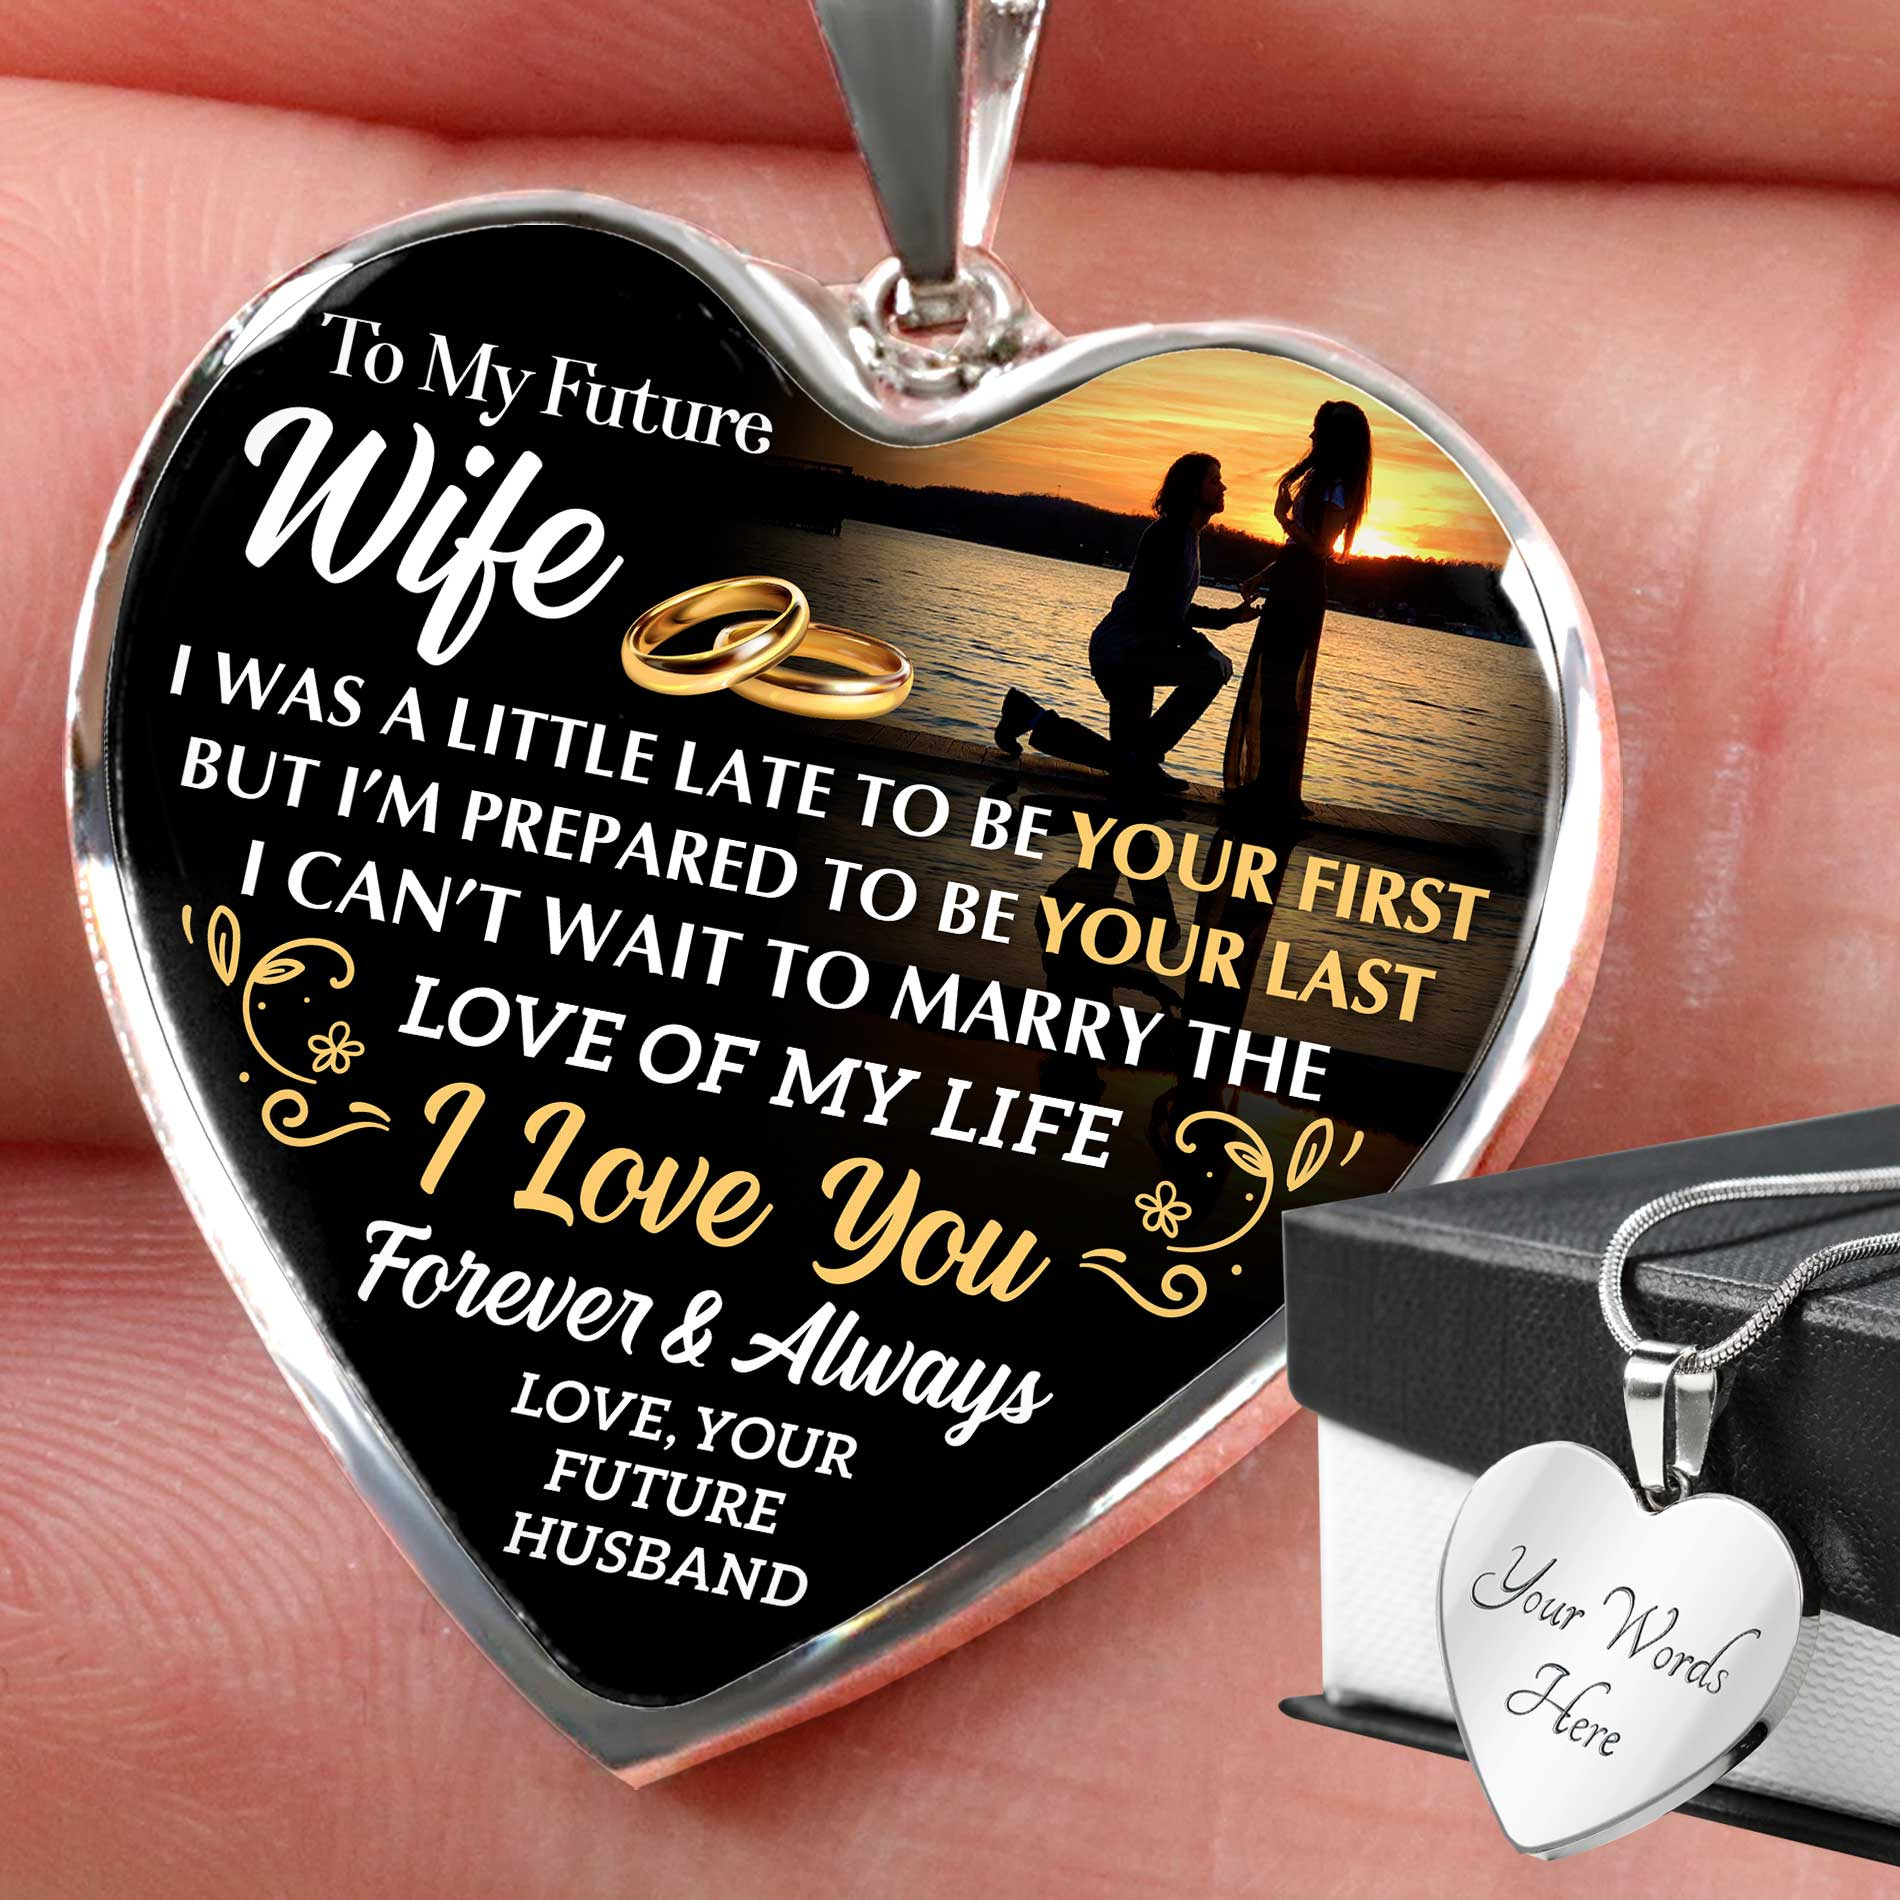 To My Future Wife - Love of My Life - Heart Pendant